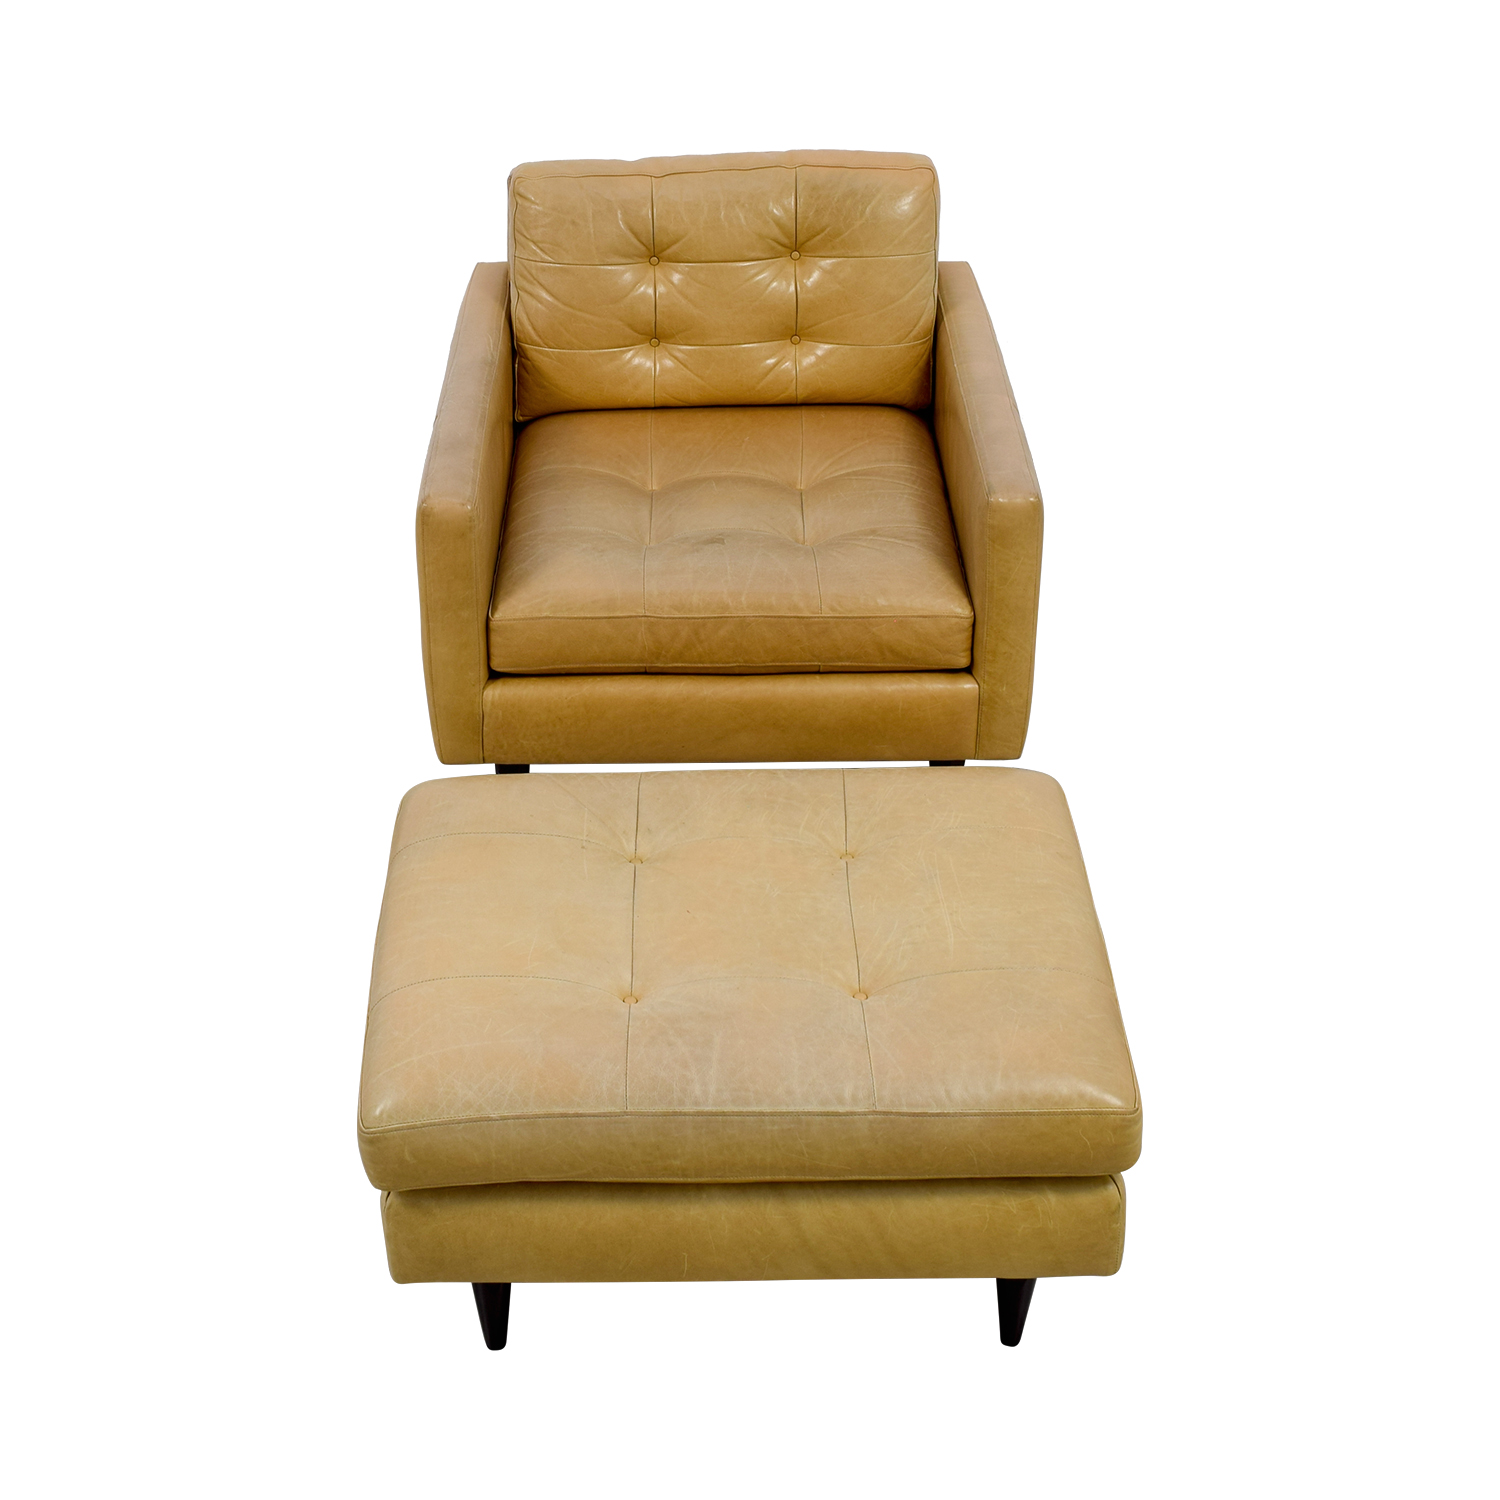 84 Off Crate Barrel Crate Barrel Beige Tufted Leather Accent Chair And Ottoman Chairs